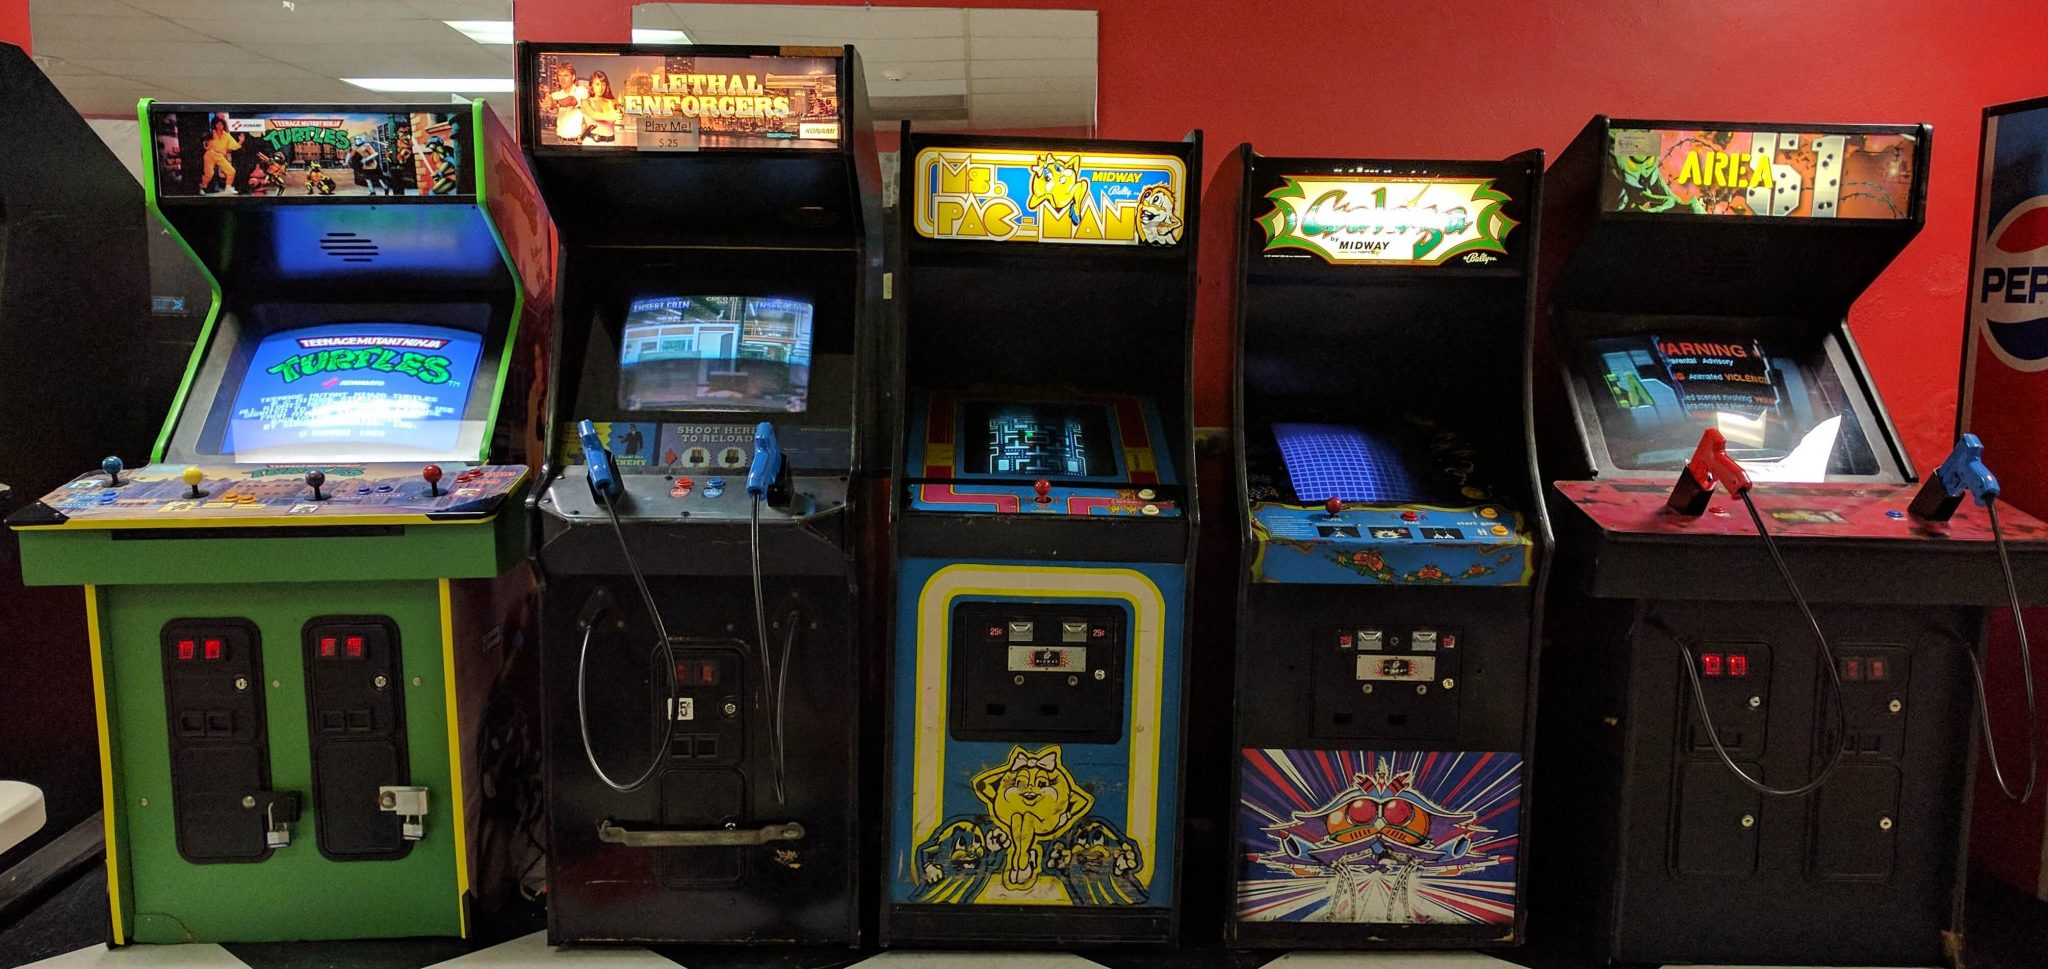 Classic Plastic Toys - Classic Plastics is a local small business that is stocked up with some really neat 70's and 80's new and used toys, video games and more! On the first Saturday of every month they have free arcade game day! Every other day they're just a quarter to play! How cool is that? The kiddos (and admit it, you too) would love that!They are located in the Grand Central Mall so make sure you stop in and check them out sometime. We were there not long ago and picked up a bunch of plastic football helmet toys for a certain little football fanatic in our house. He's going to be so excited when he empties his stocking!